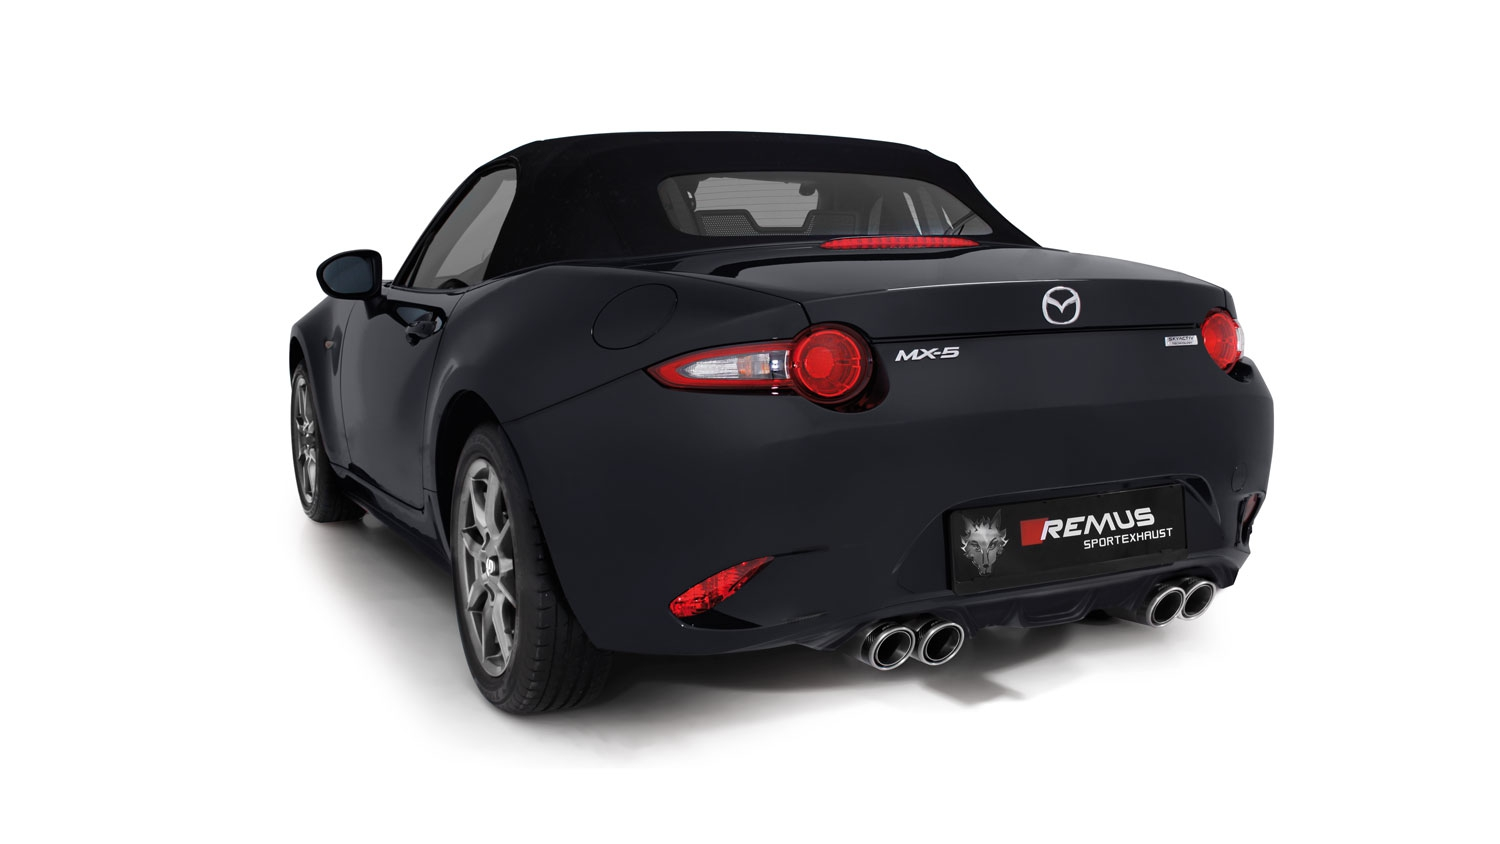 remus product information 26-2016 mazda mx-5, type nd